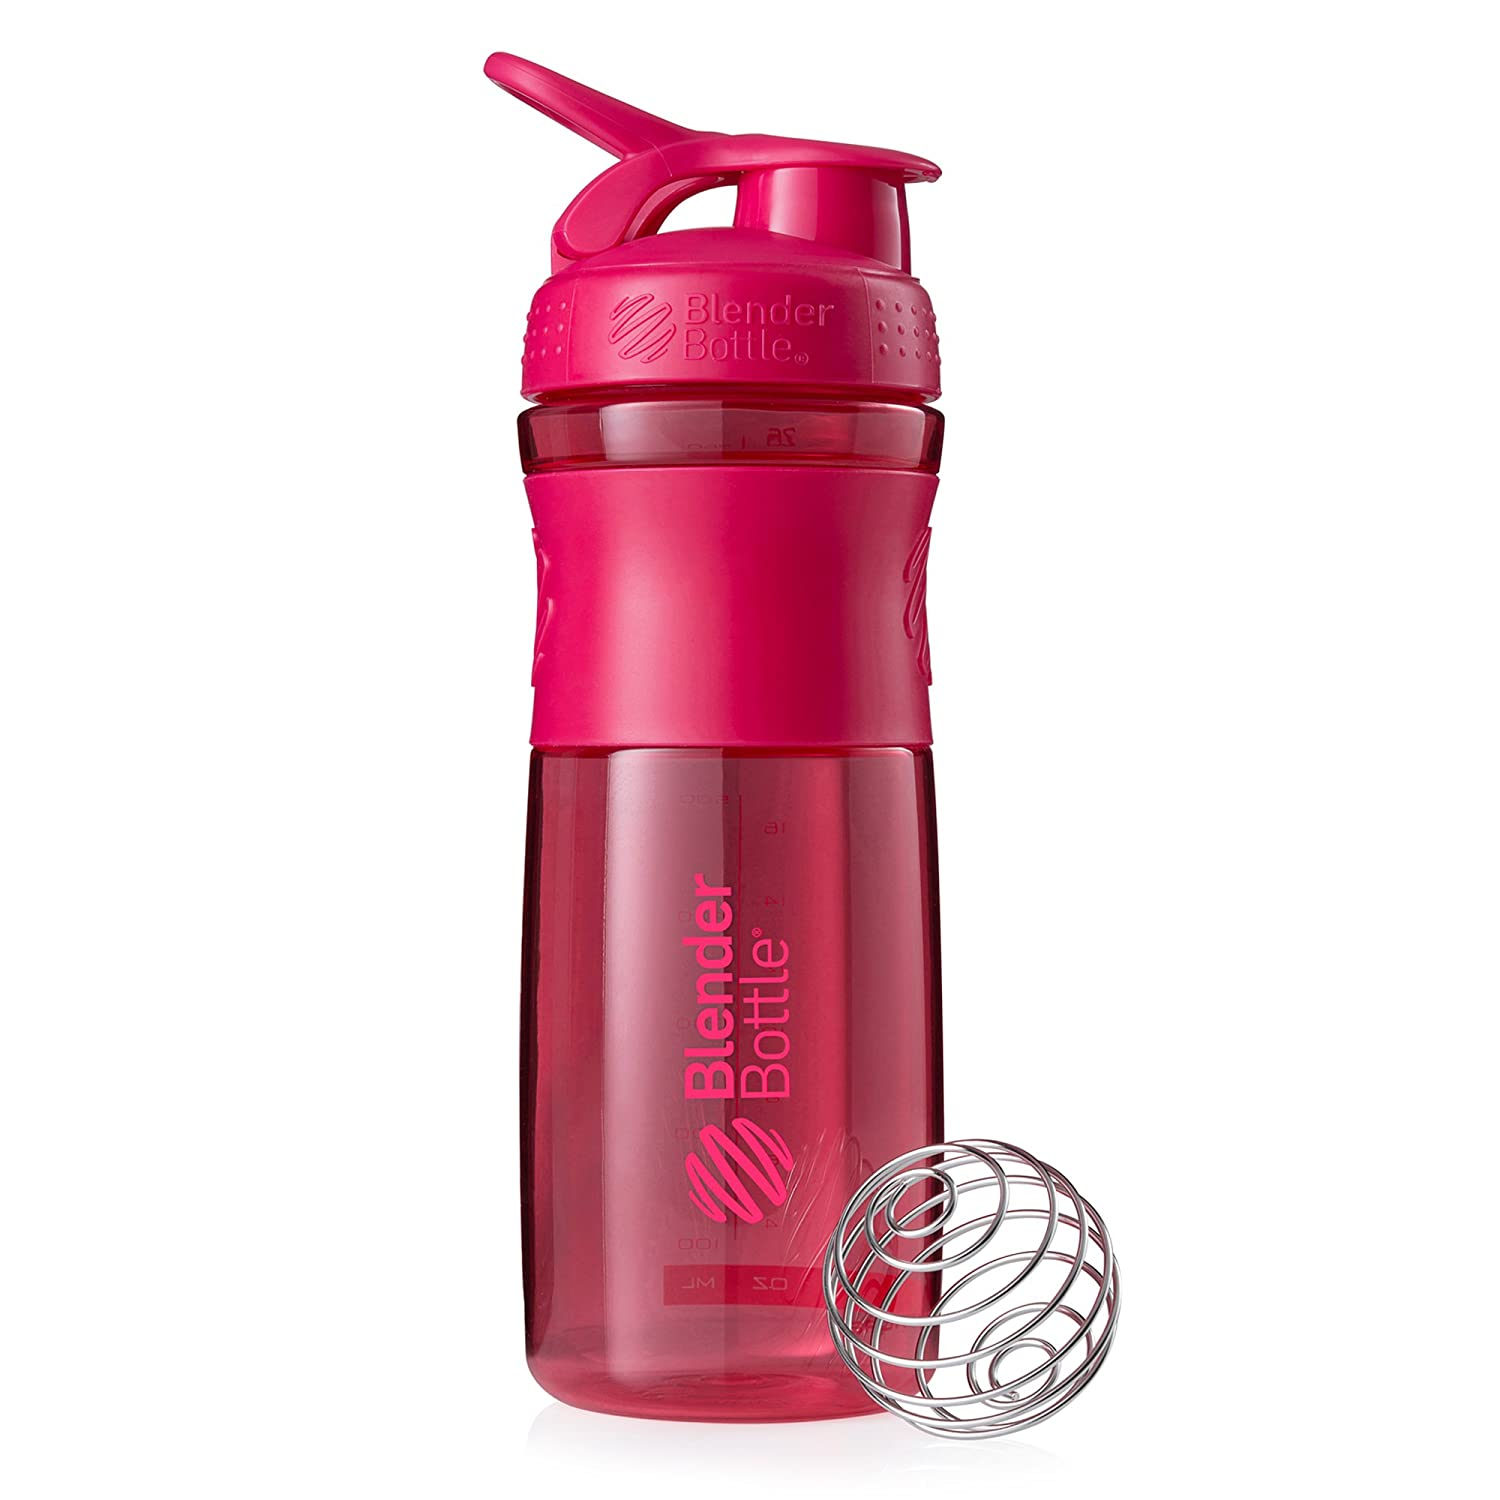 BlenderBottle 28-Ounce Shaker.